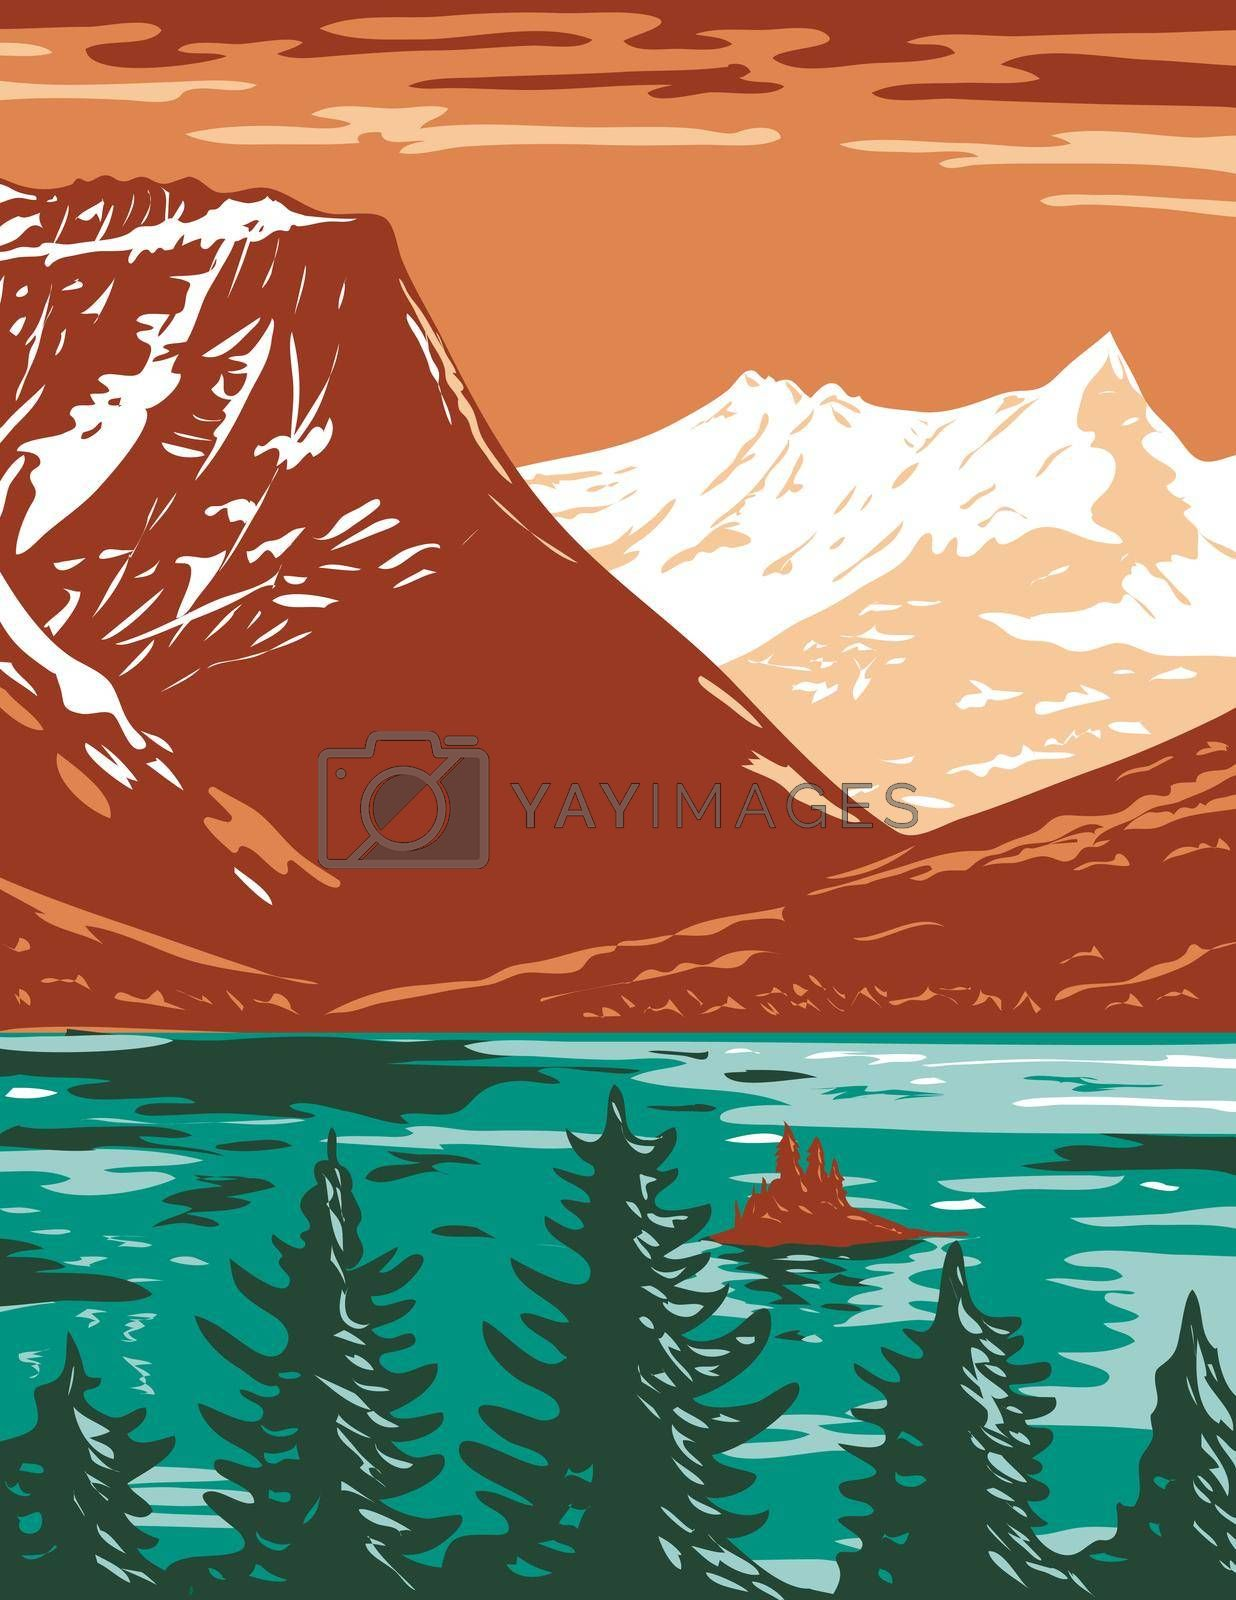 WPA poster art of Saint Mary Lake, the second-largest lake in Glacier National Park located in Montana, United States of America done in works project administration or federal art project style.